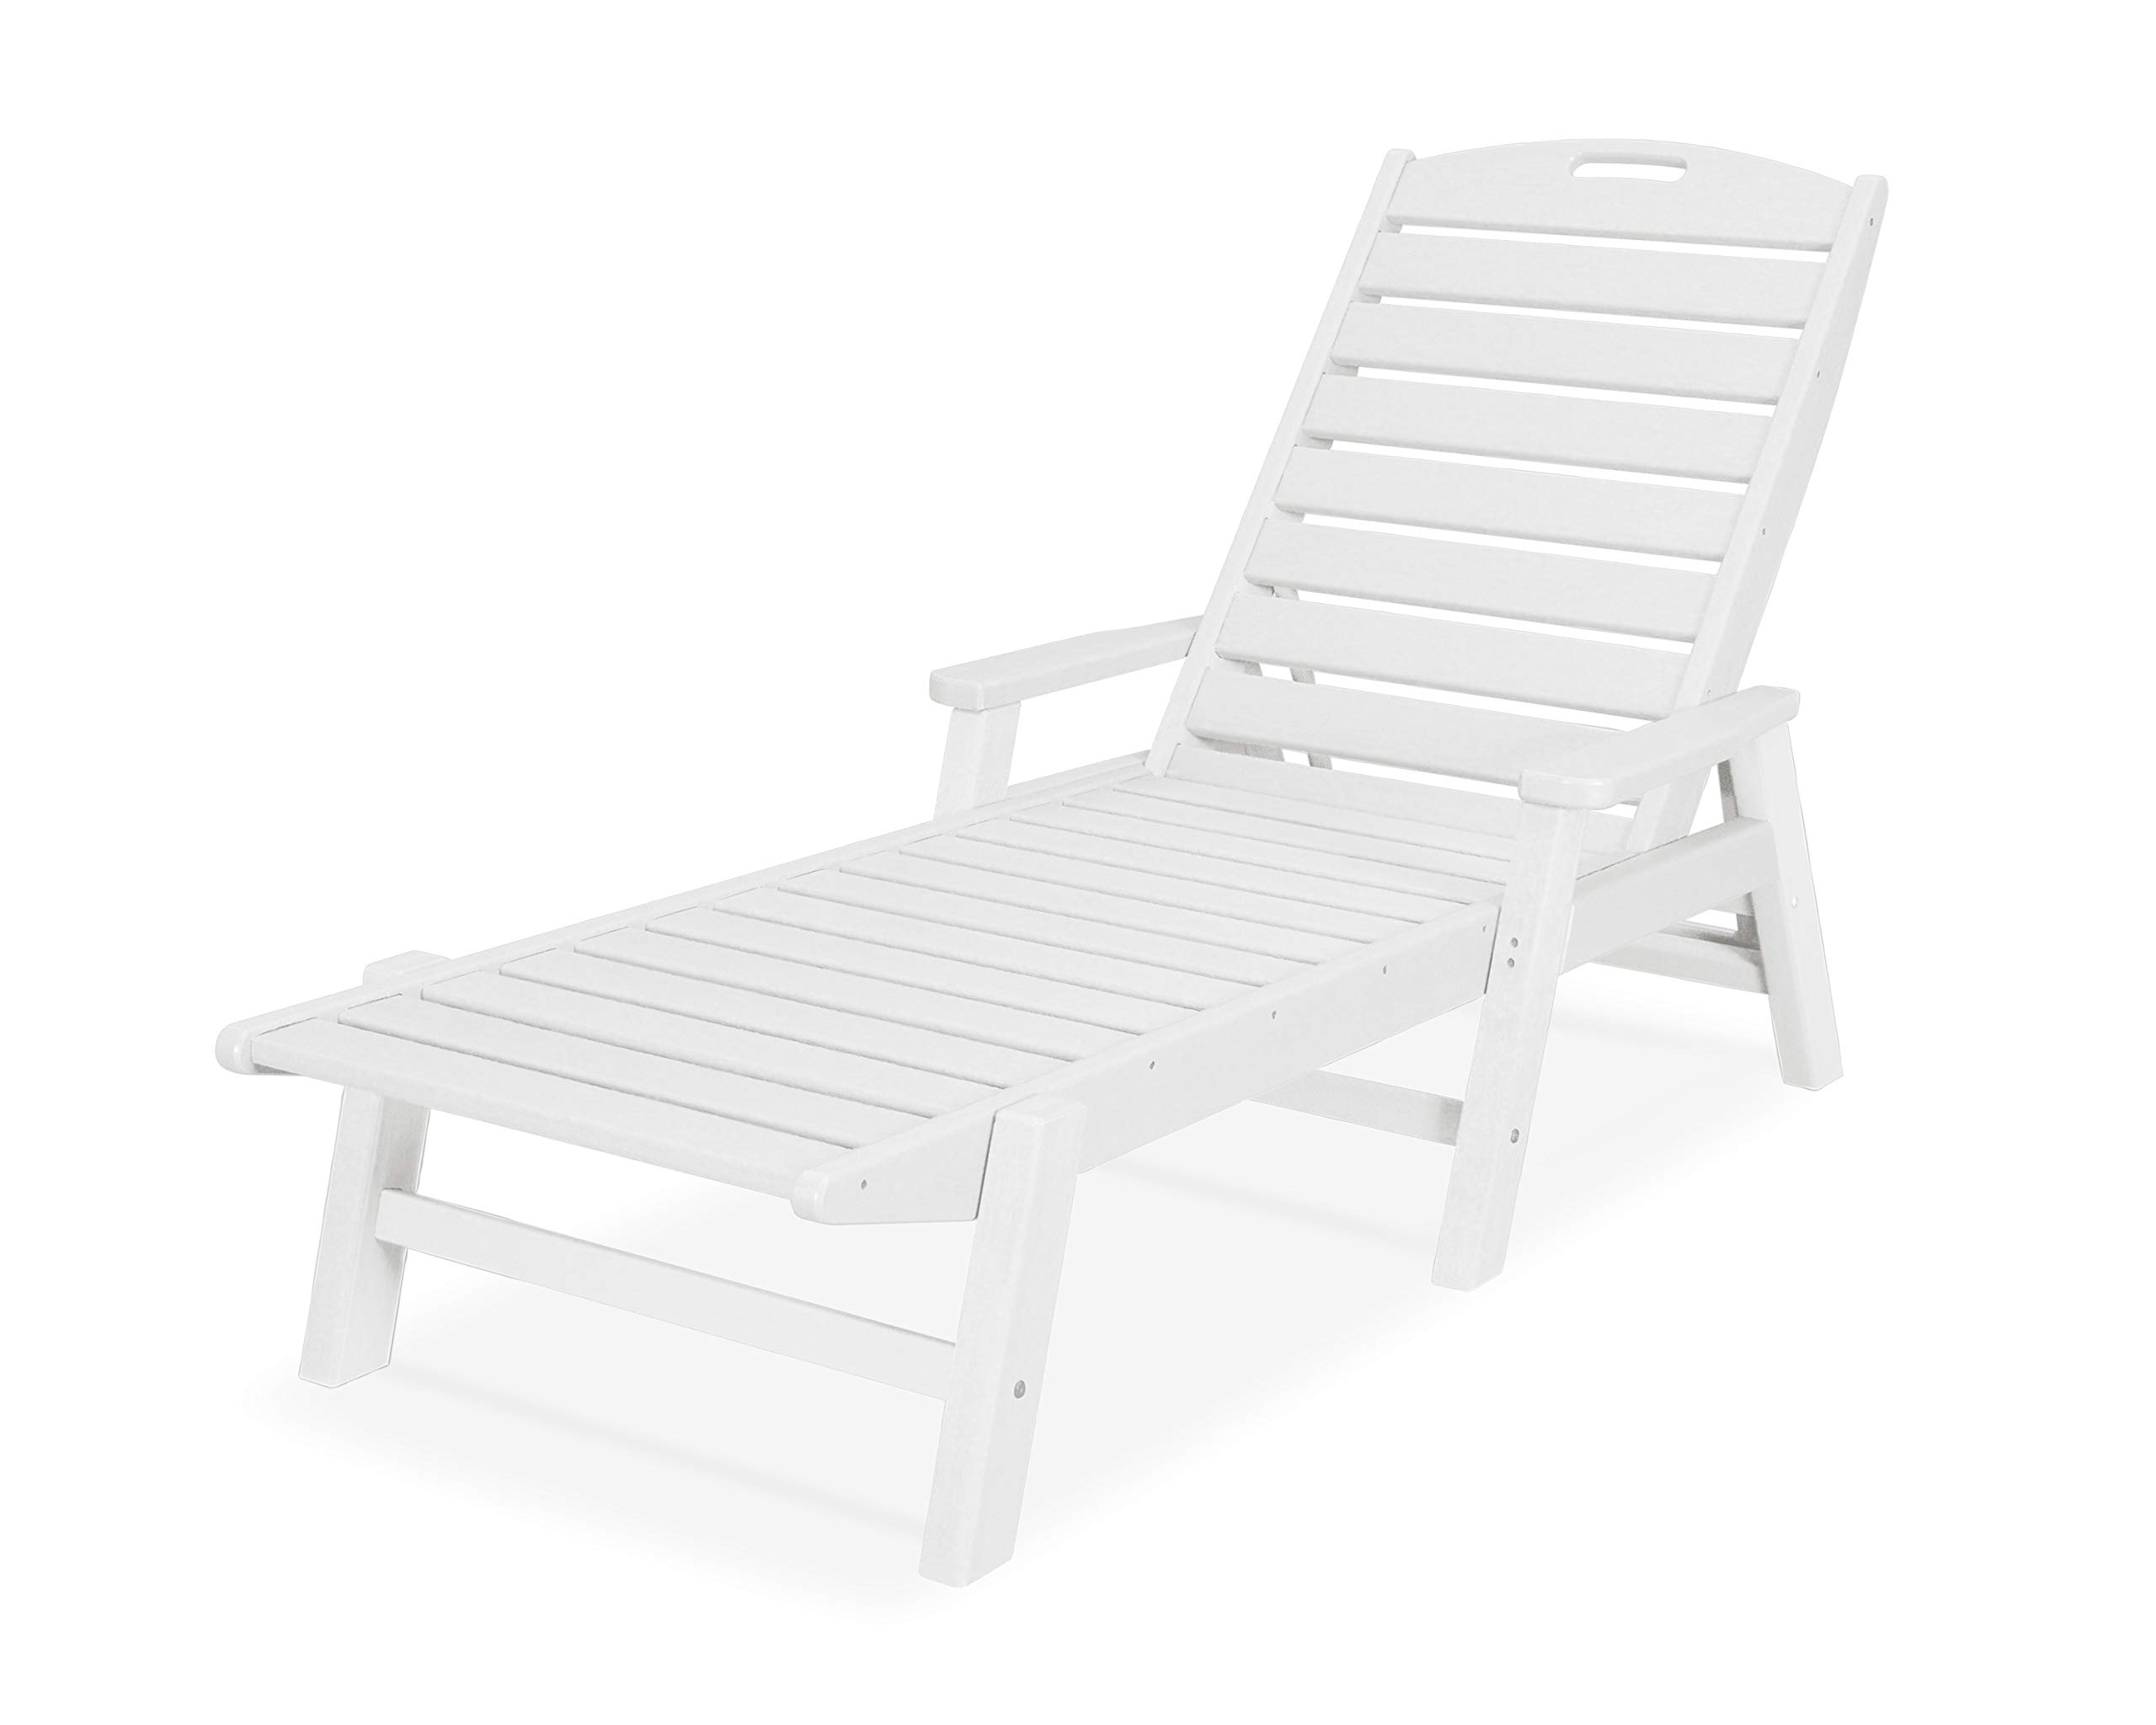 POLYWOOD NCC2280MA-P Nautical Arms Chaise, White by POLYWOOD